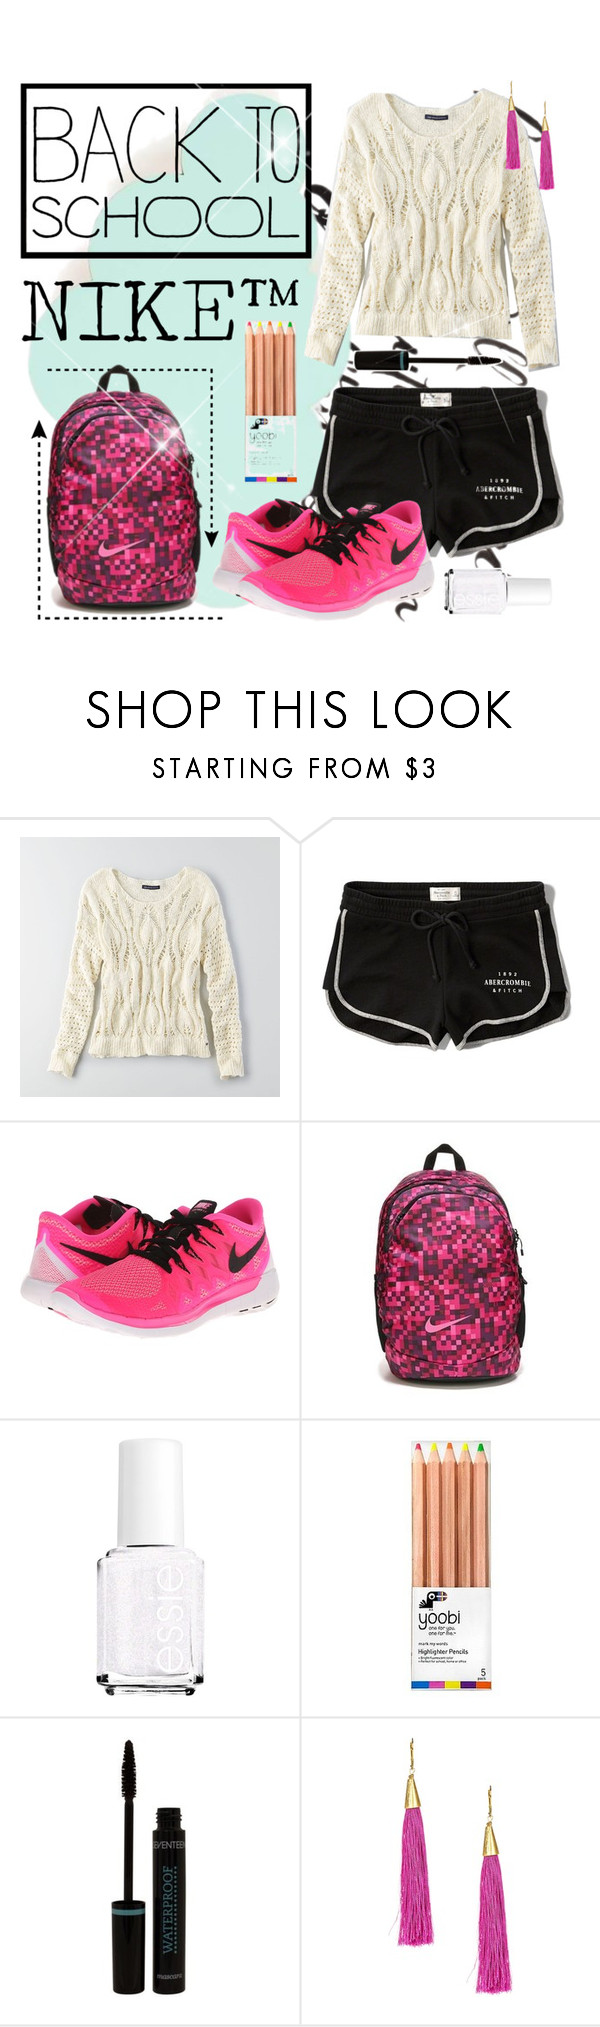 """""""Back To School 3/5- (Set #78)"""" by comebackqueen101 ❤ liked on Polyvore featuring ferm LIVING, American Eagle Outfitters, Abercrombie & Fitch, NIKE, Essie and Mad Jewels"""